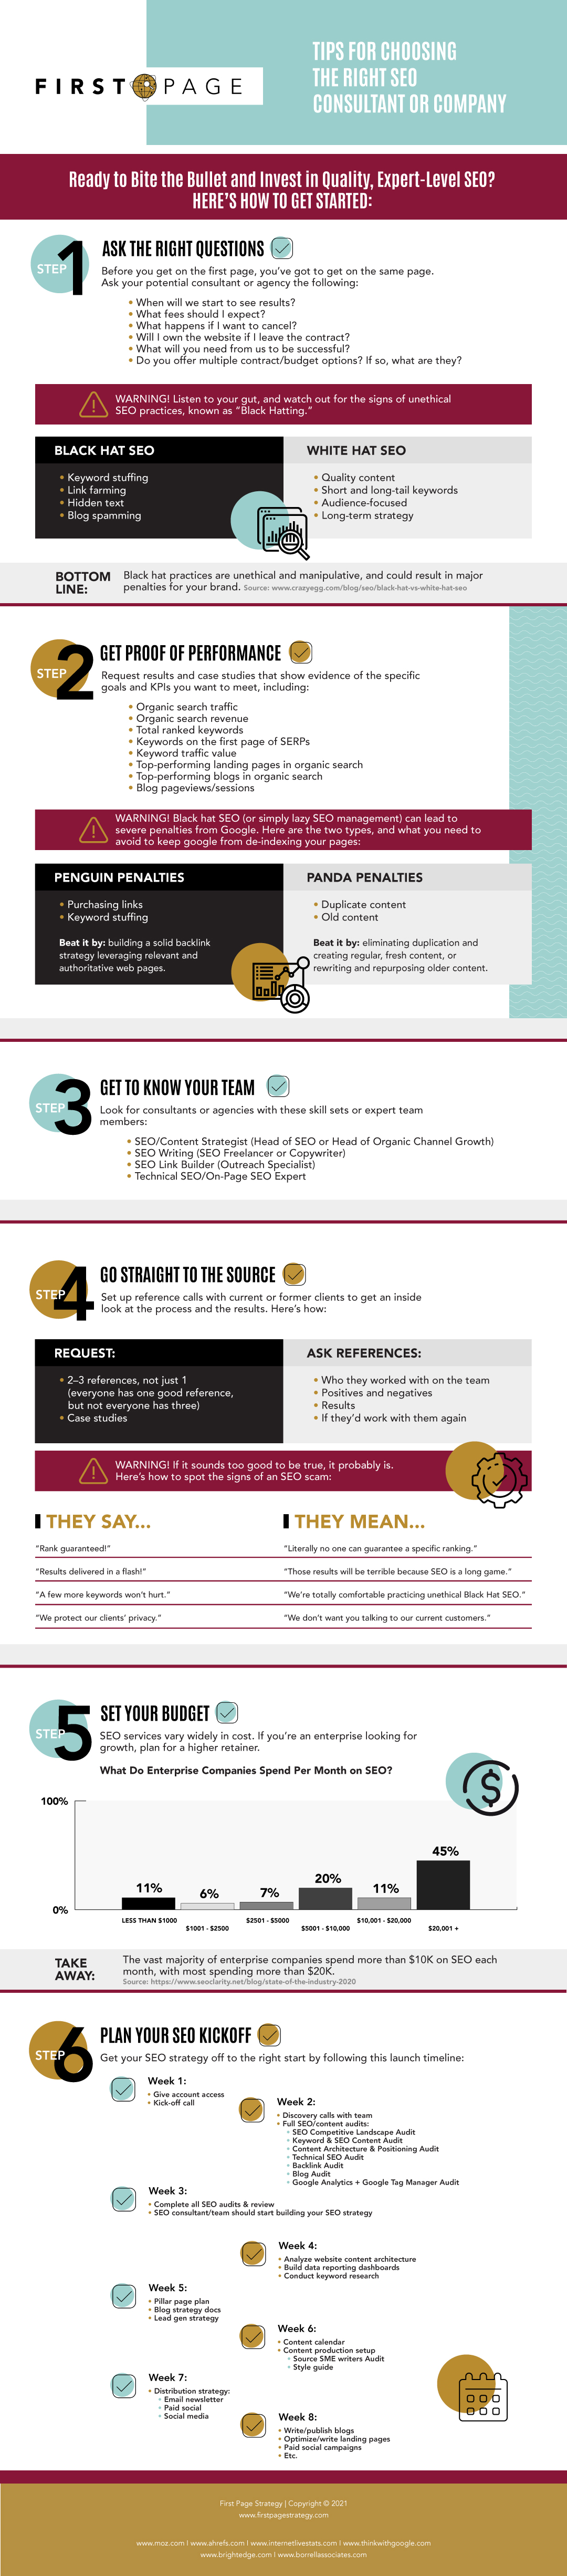 Infographic about Tips for Choosing the Right SEO Consultant or Company